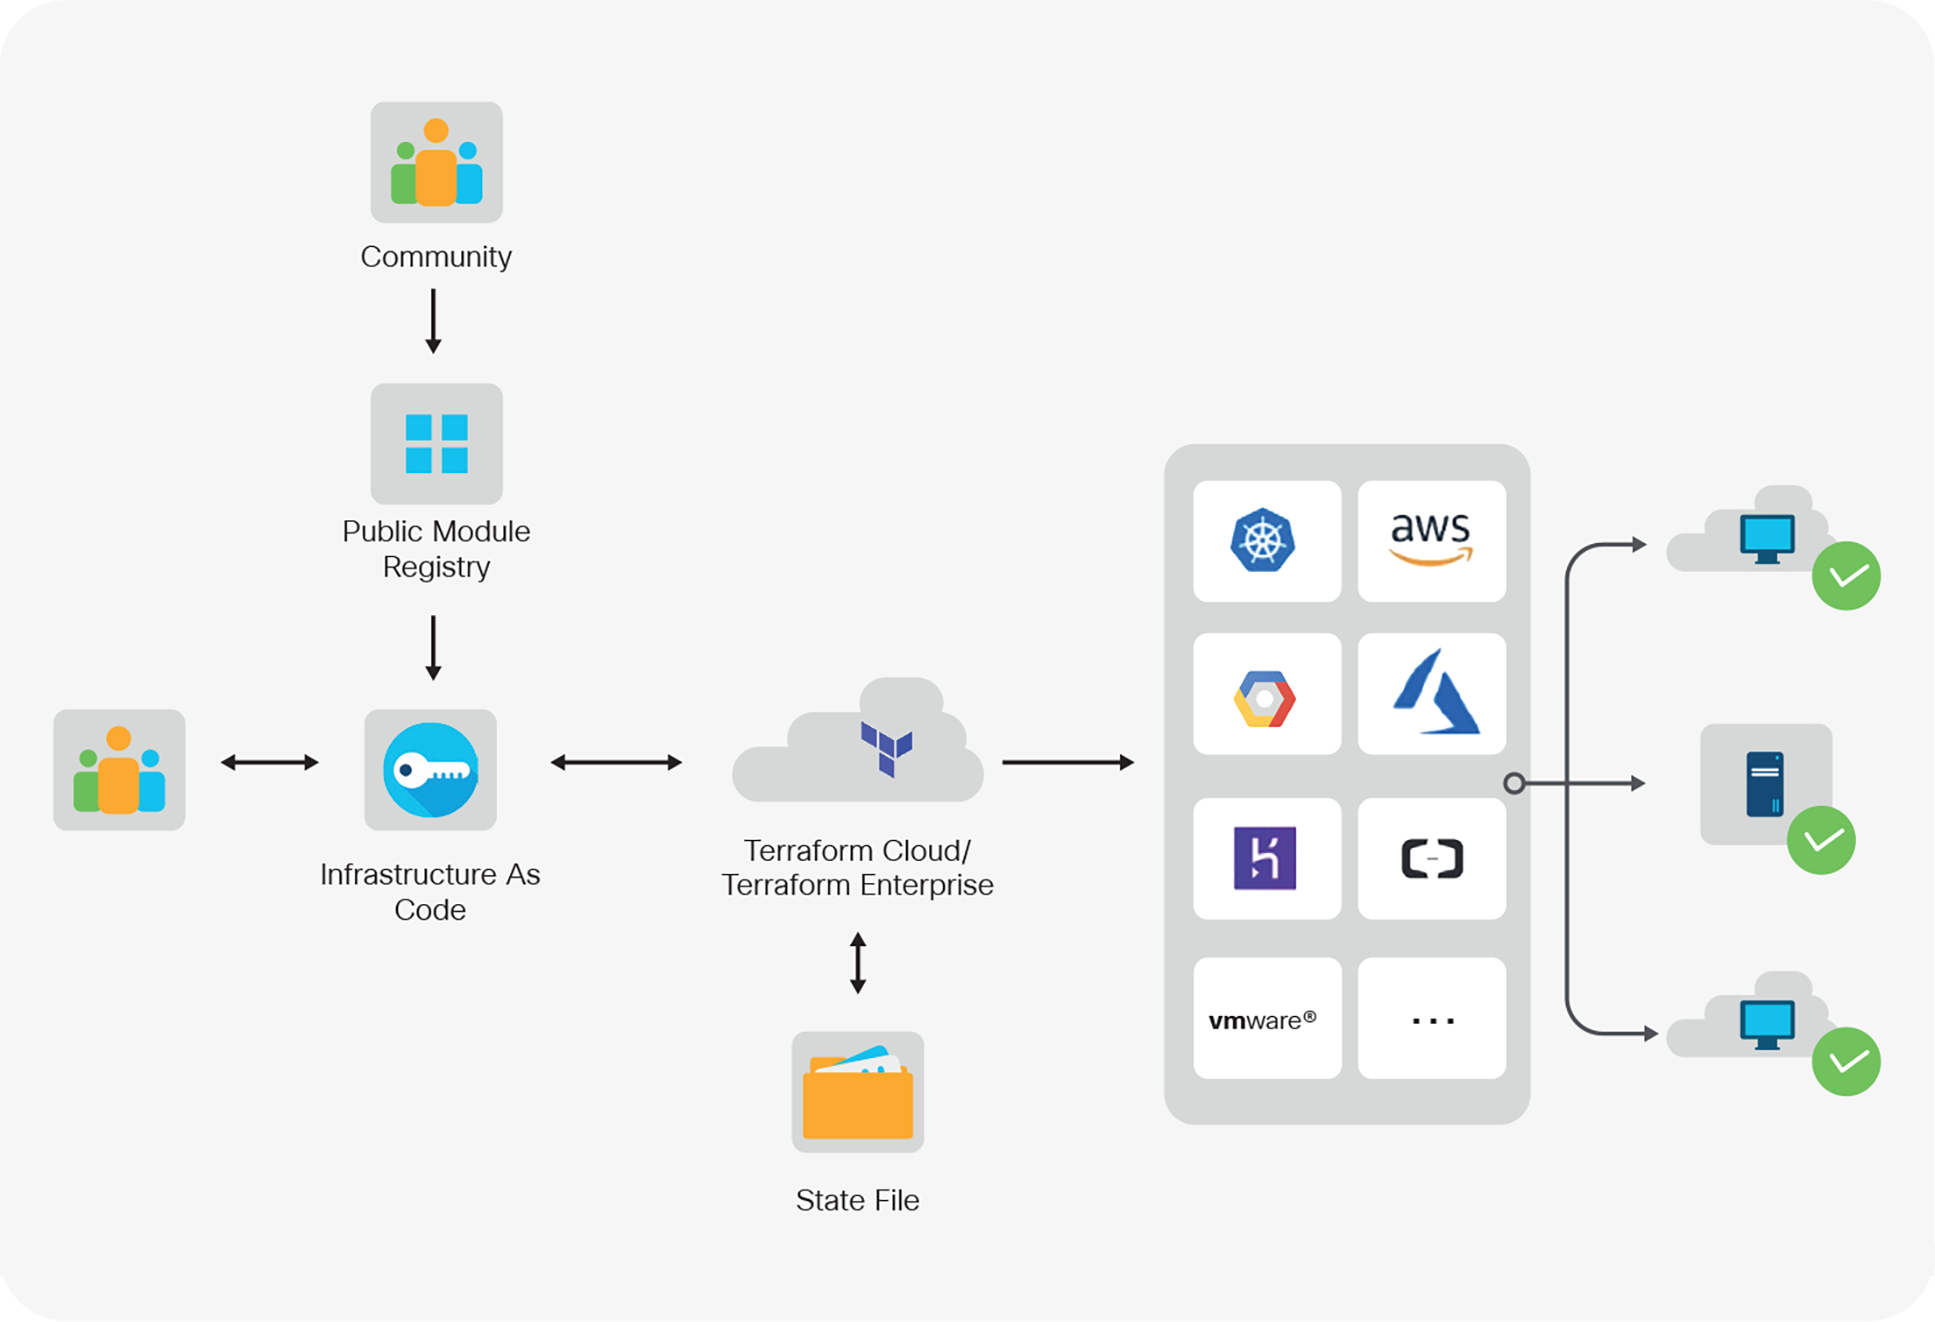 Sample workflow steps for creating configuration intent using Terraform Cloud.